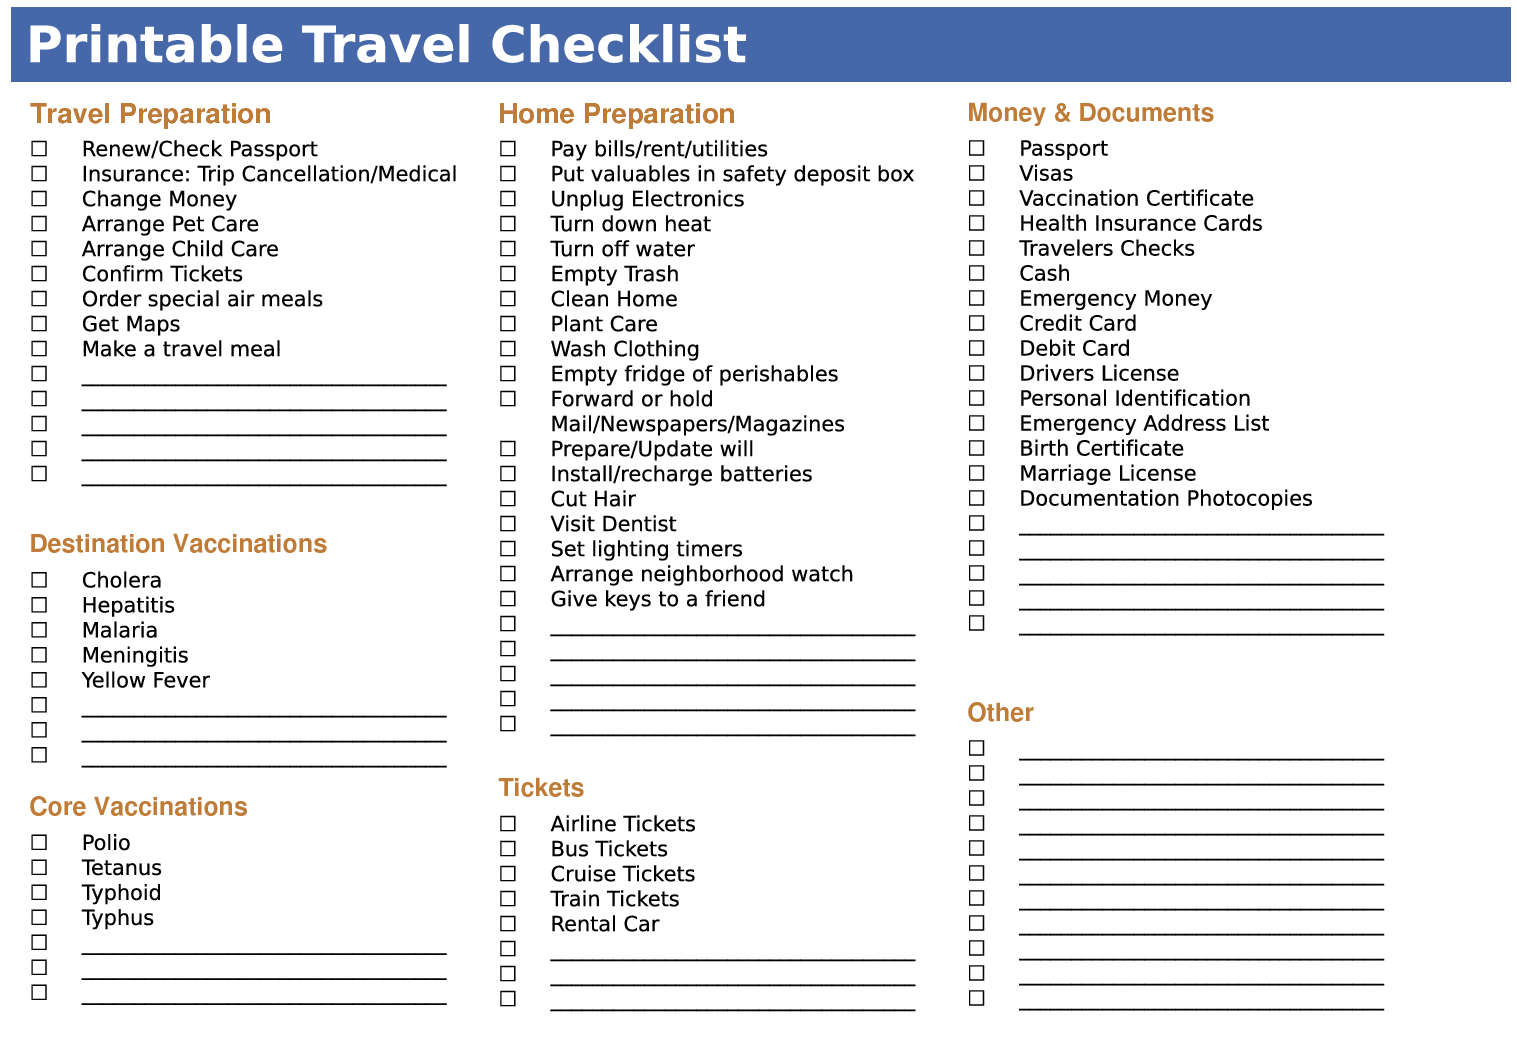 7 Images of Travel Checklist Printable